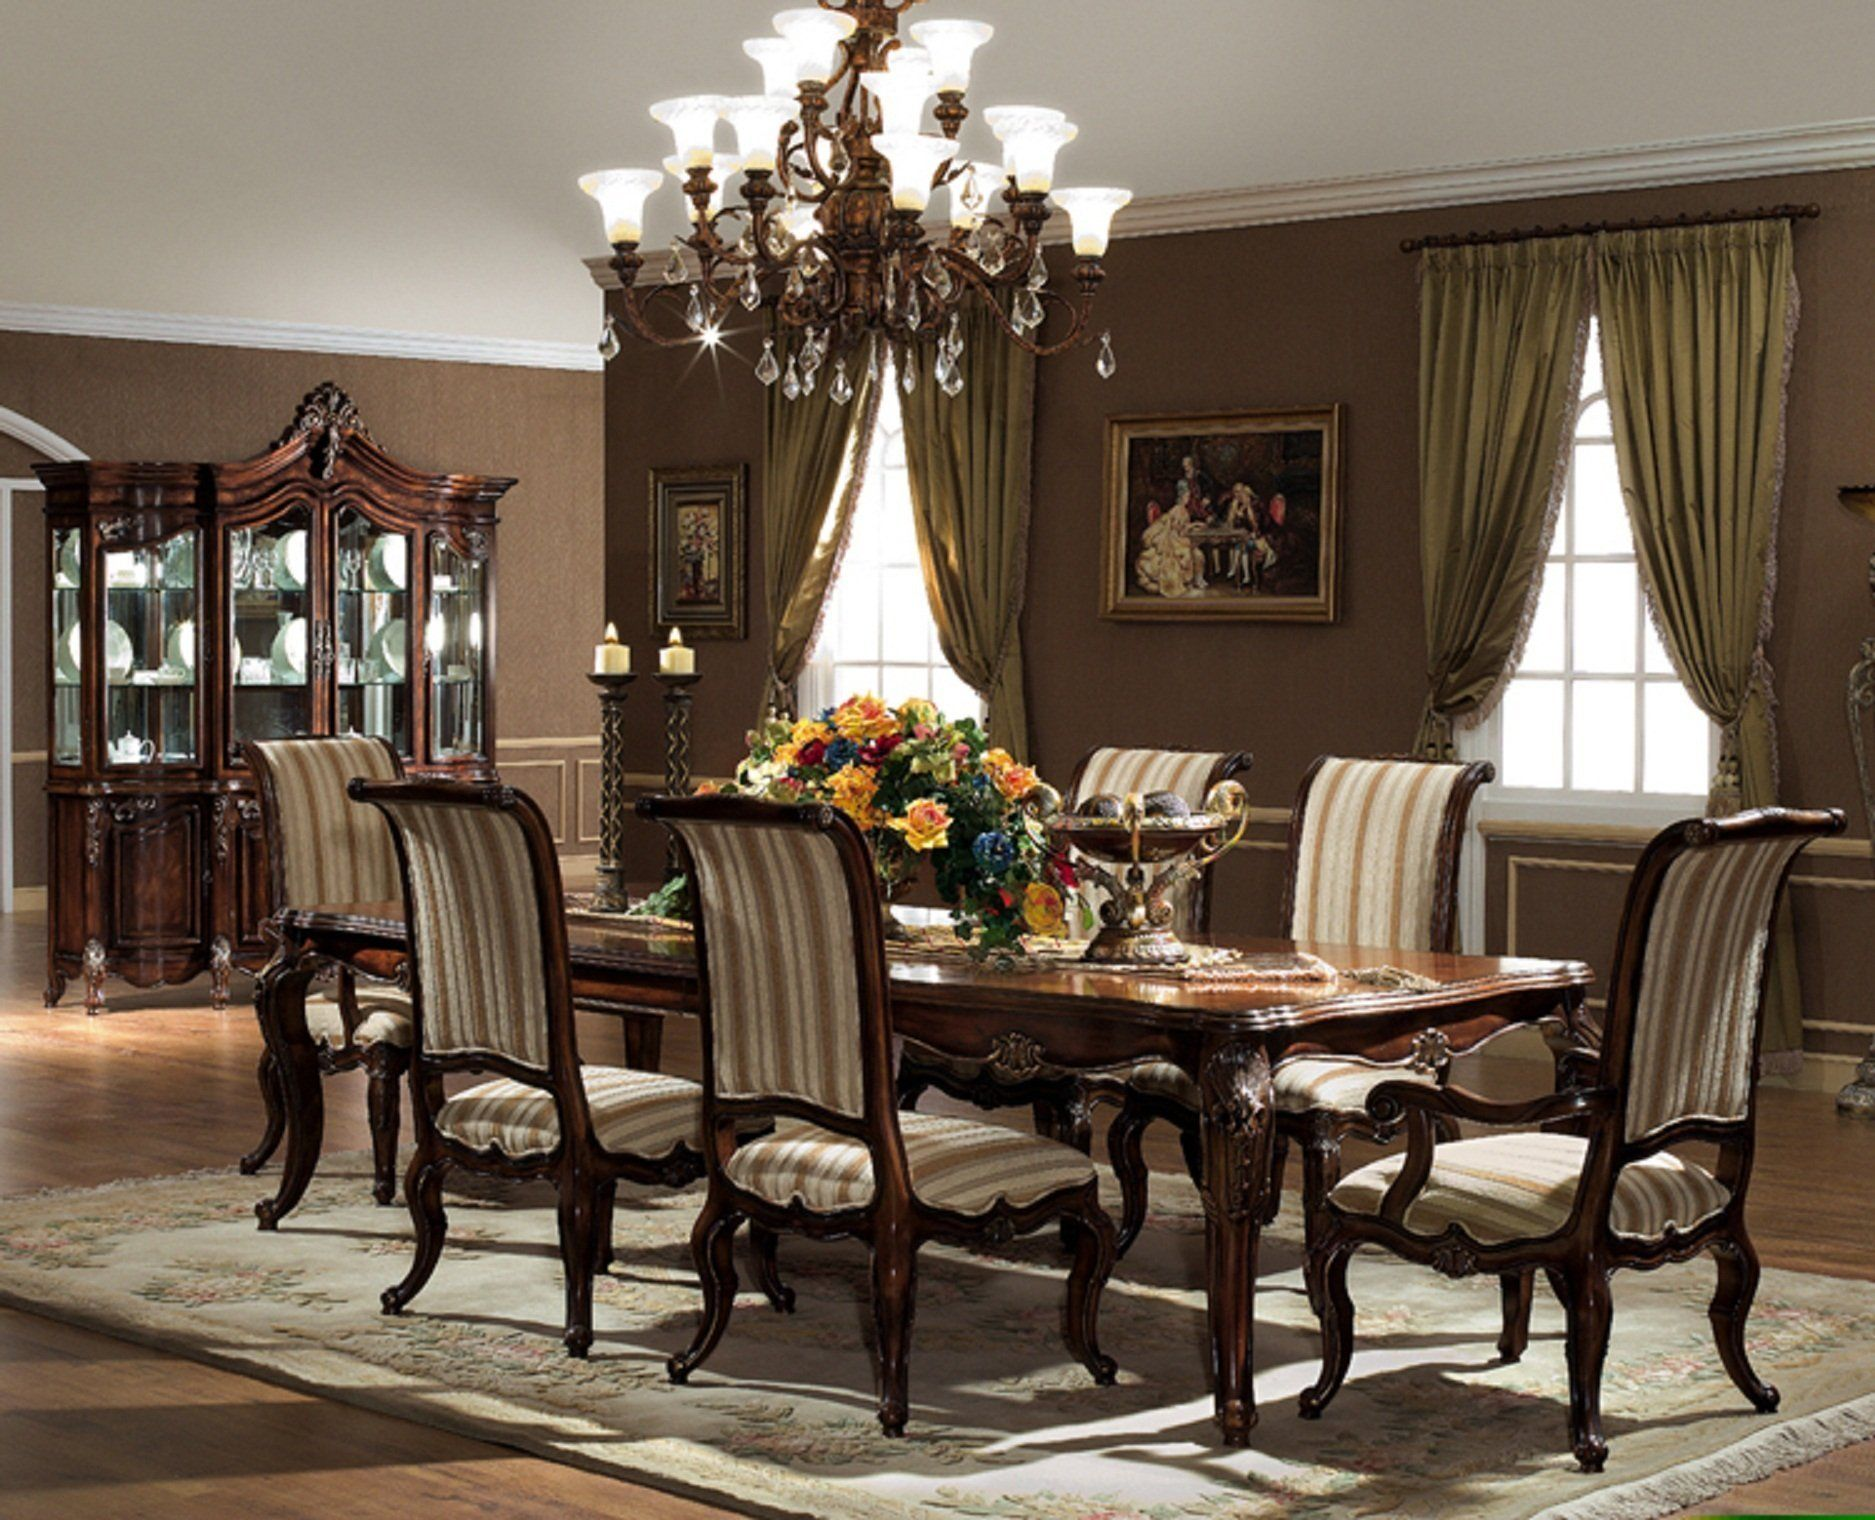 Formal dining room design ideas   Great Contemporary Dining Rooms with Combination of Light Wood